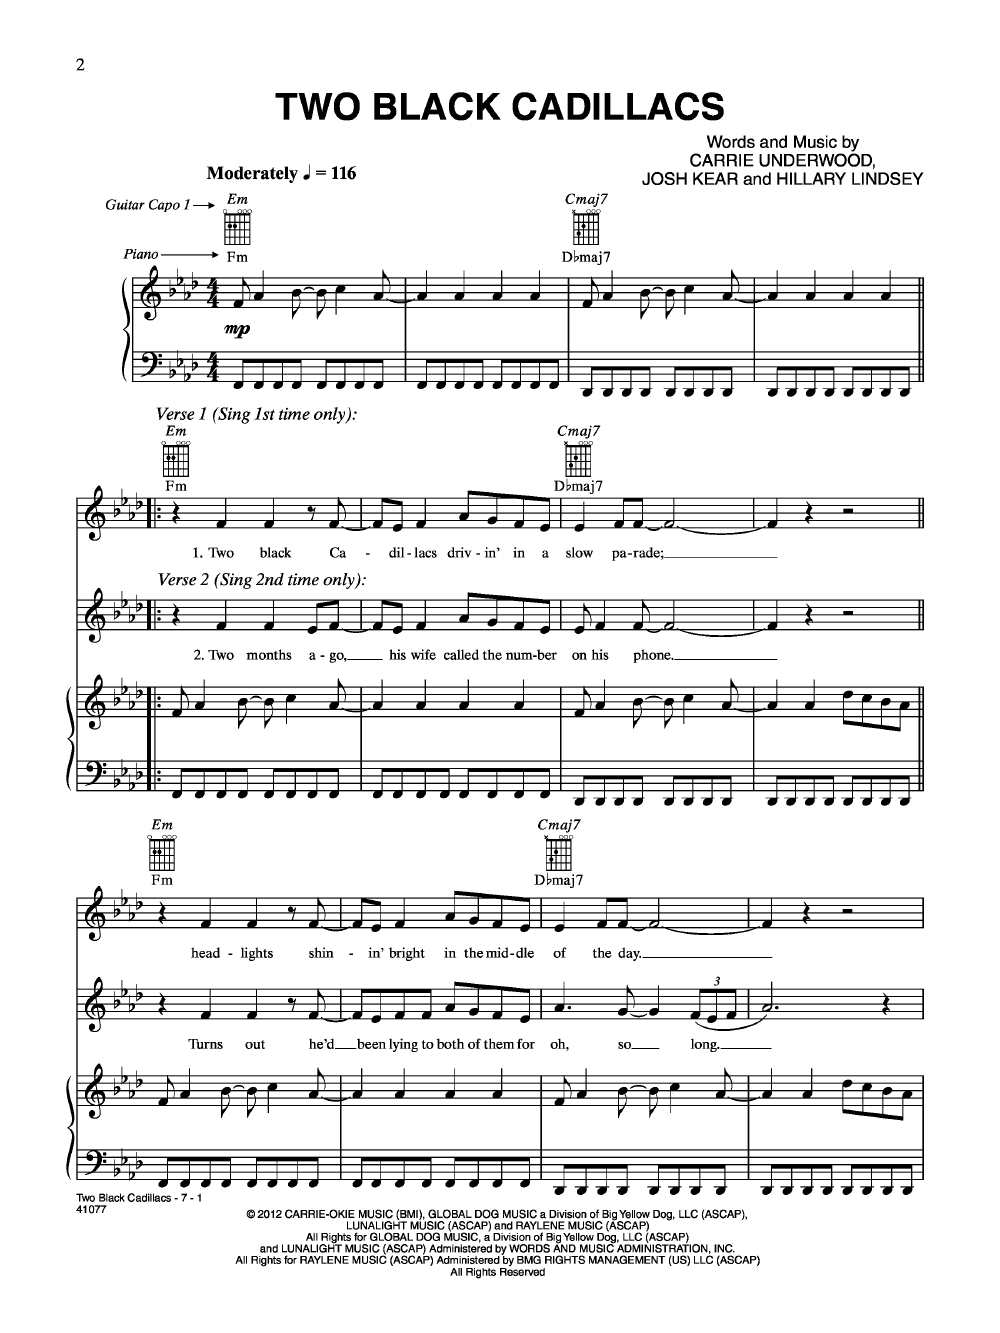 Two Black Cadillacs by Carrie Underwood| J.W. Pepper Sheet Music